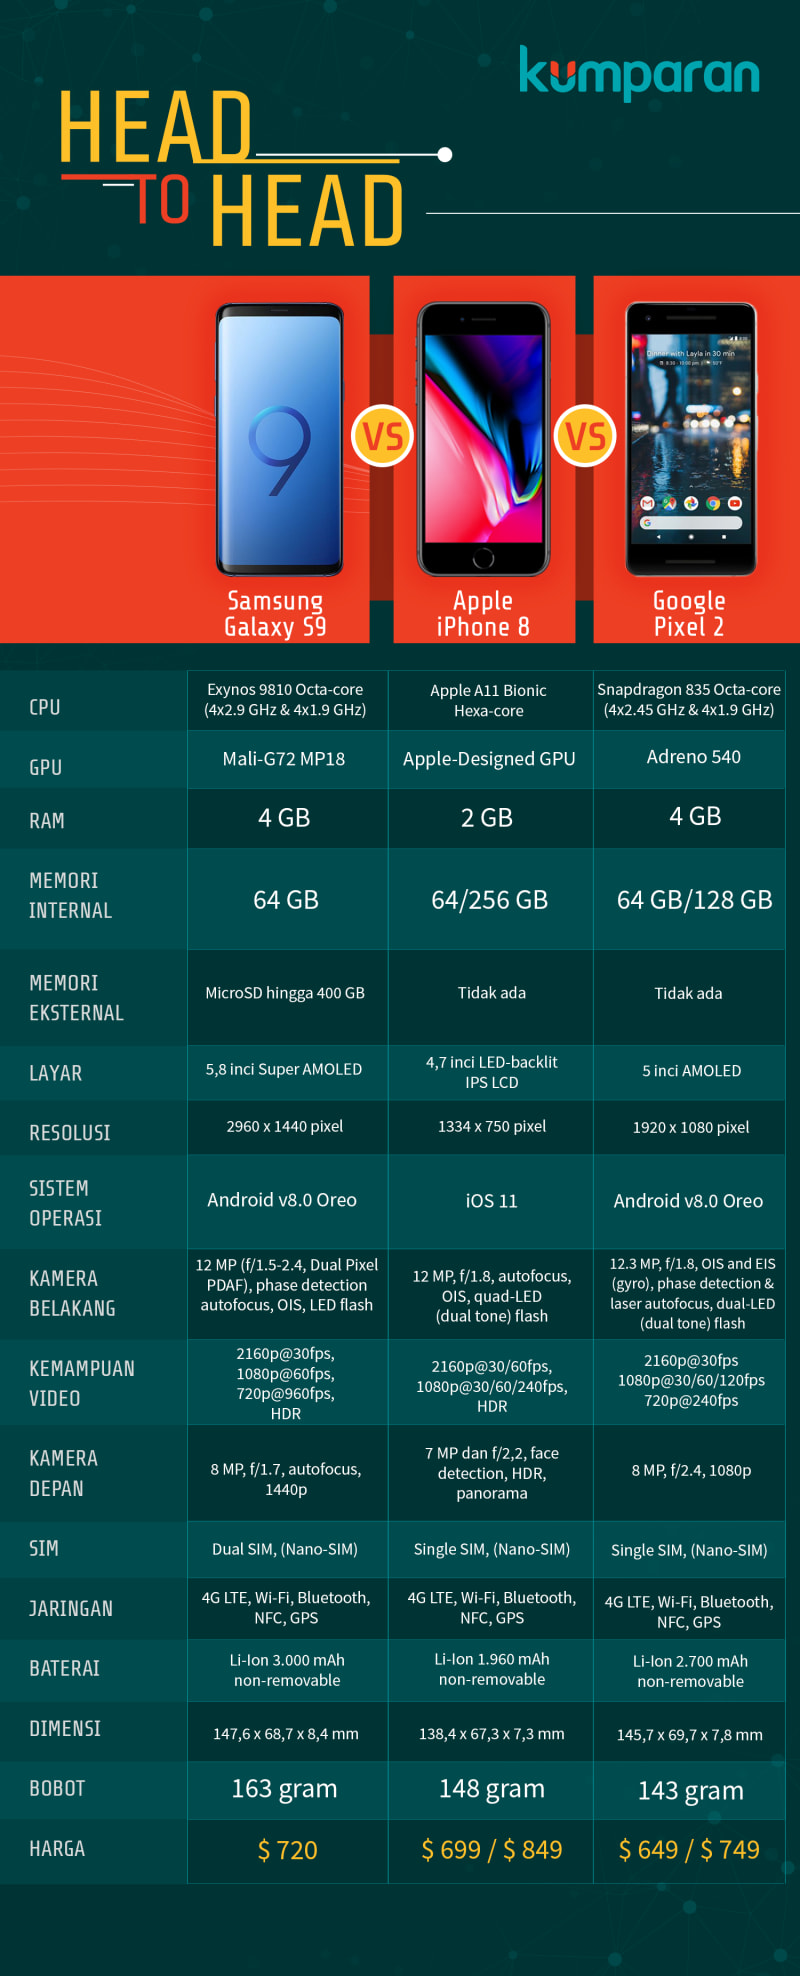 Perang Kamera Tunggal Samsung Galaxy S9 vs iPhone 8 vs Google Pixel 2